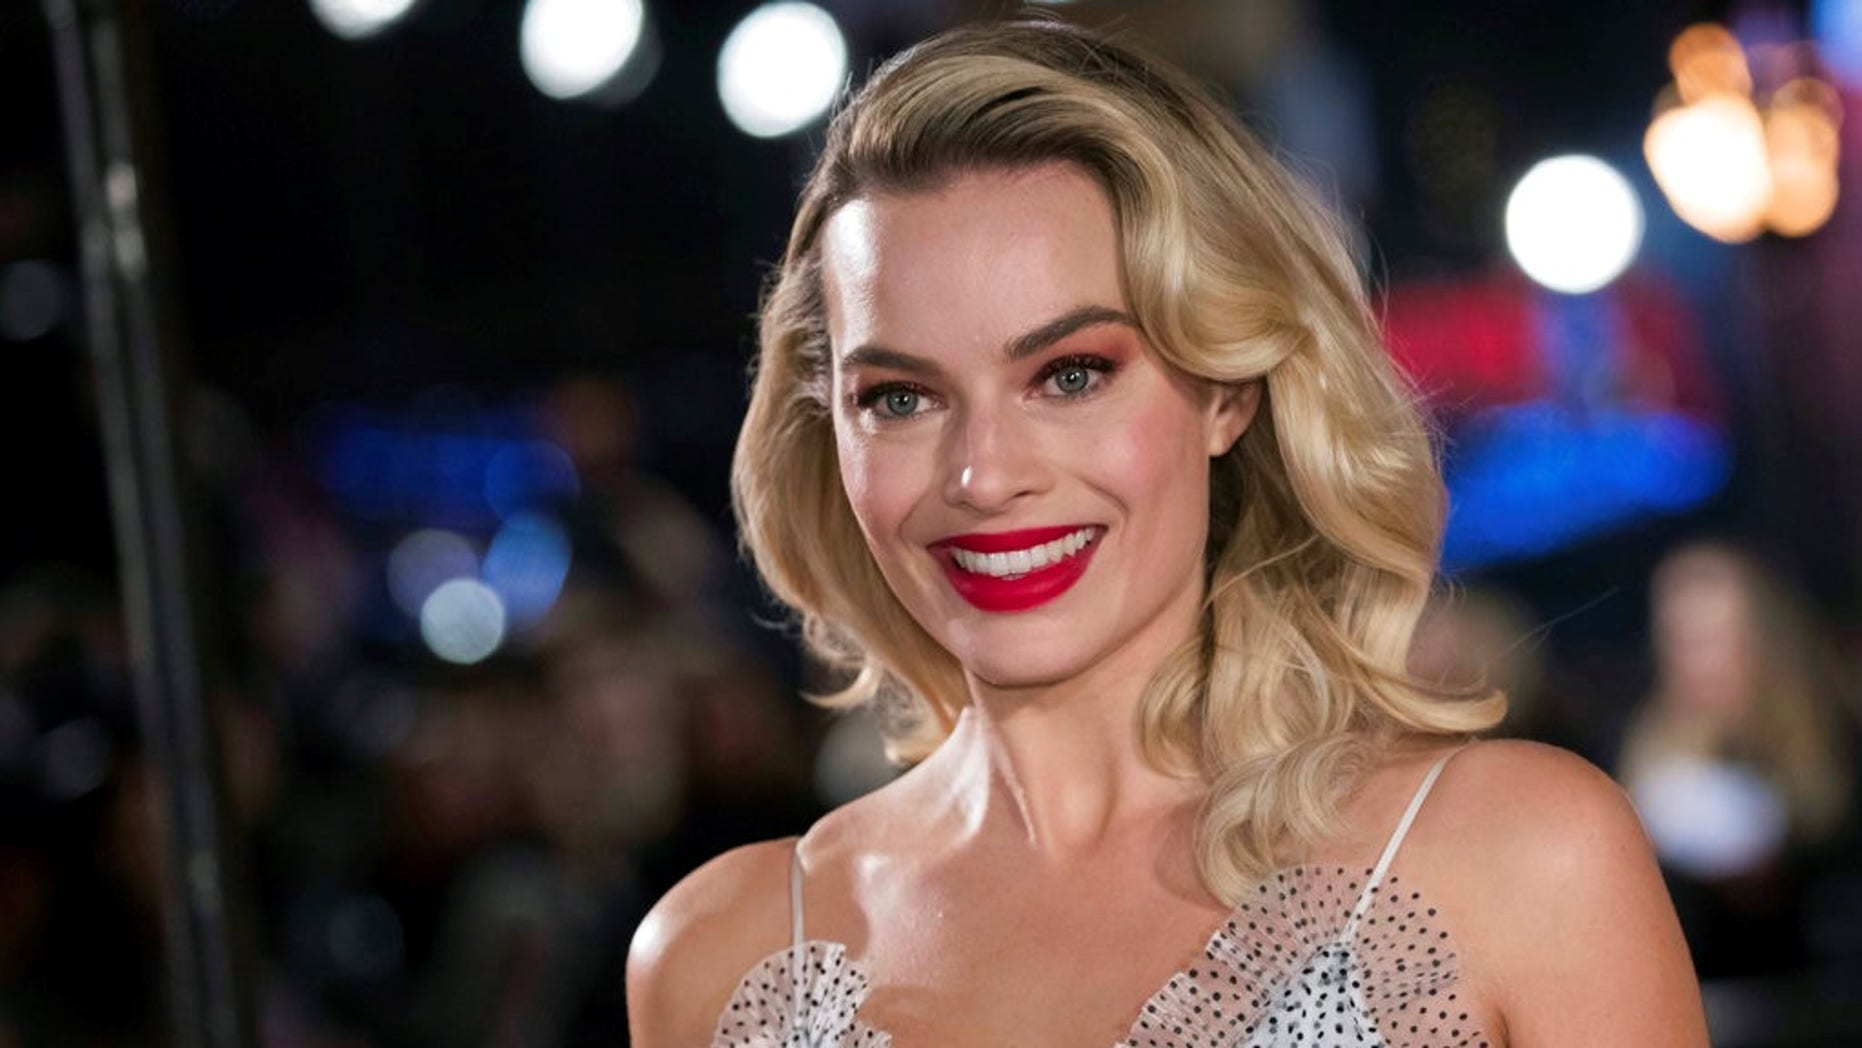 Margot Robbie said she hates being asked about when she will get pregnant.